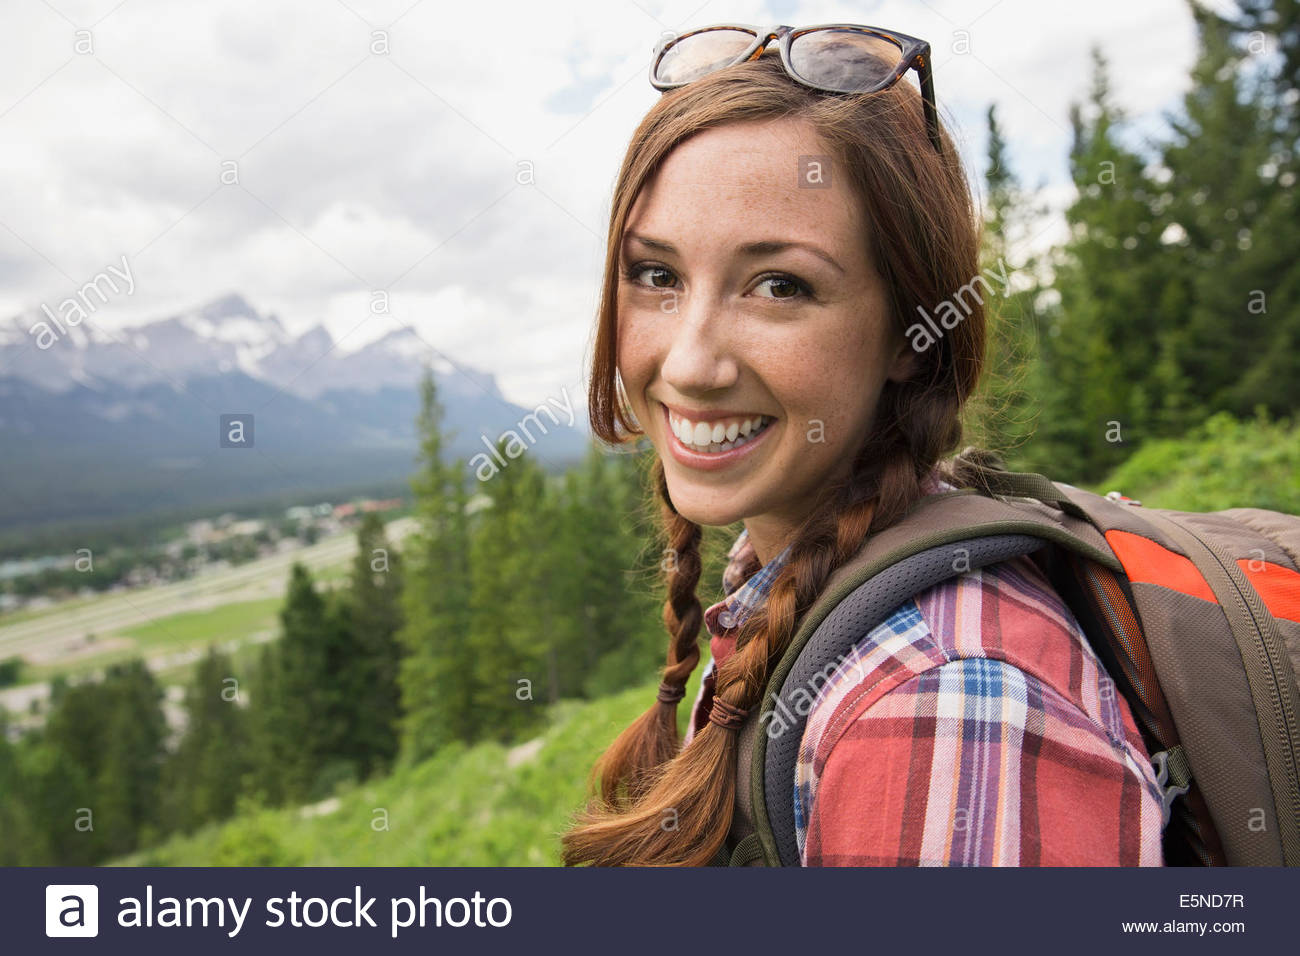 Portrait of smiling woman hiking near mountains - Stock Image